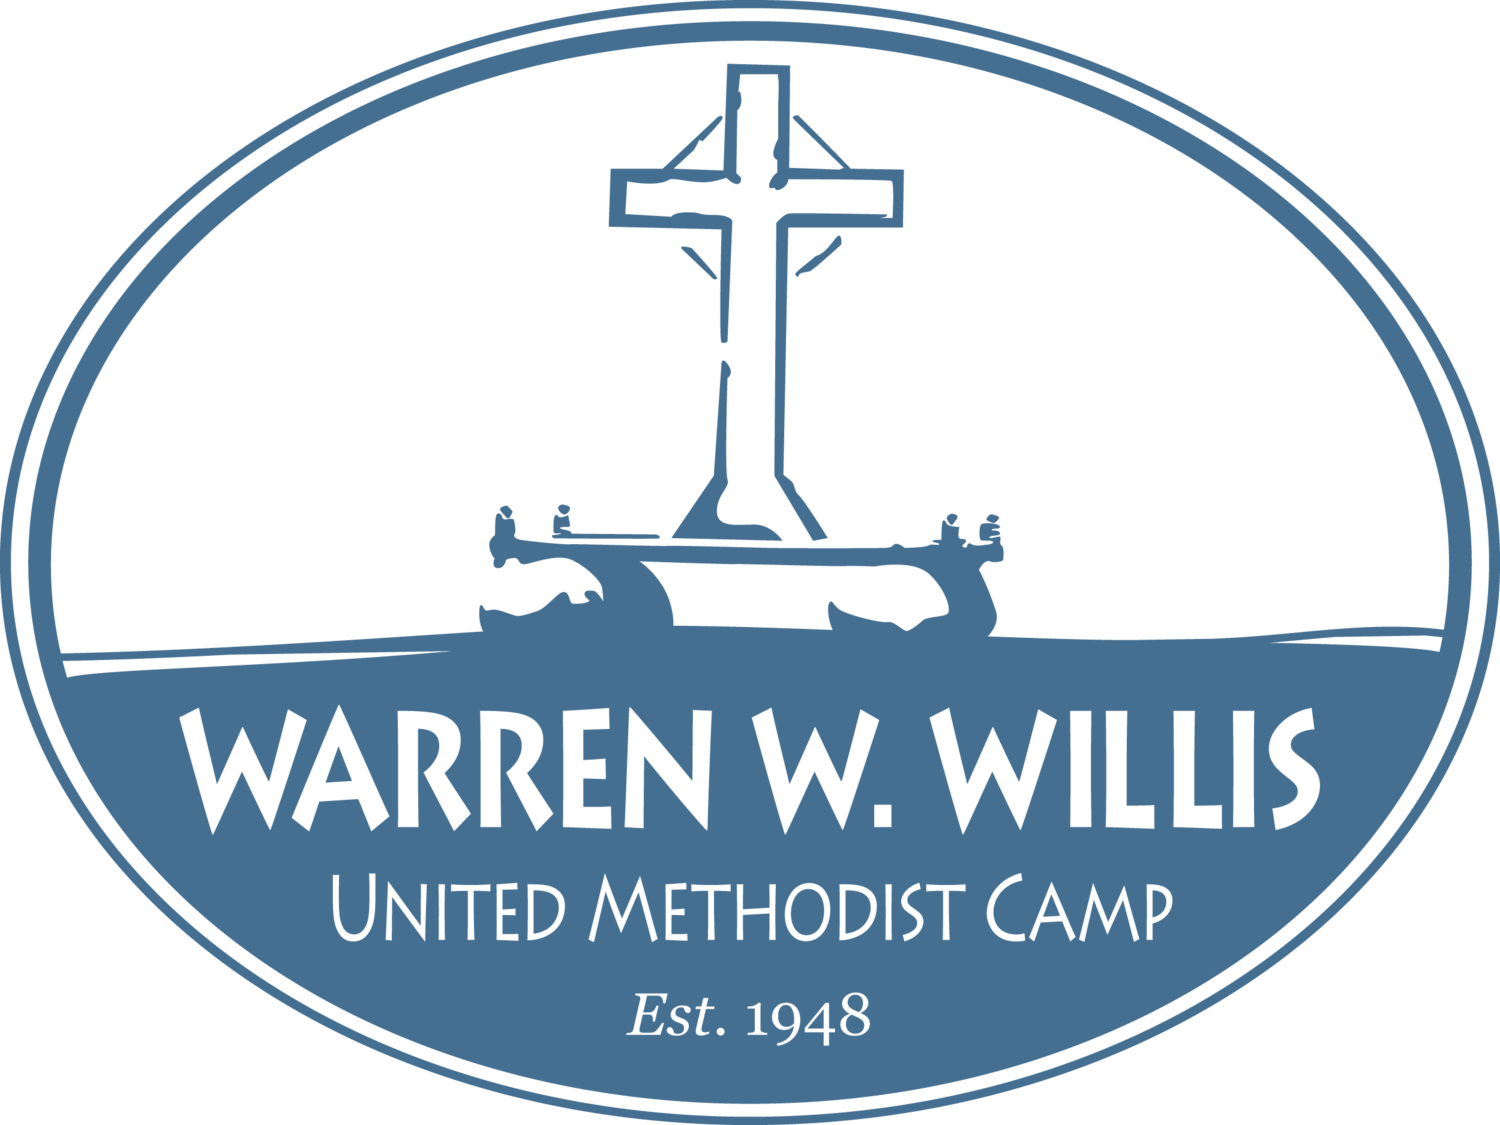 Warren Willis Summer Camp